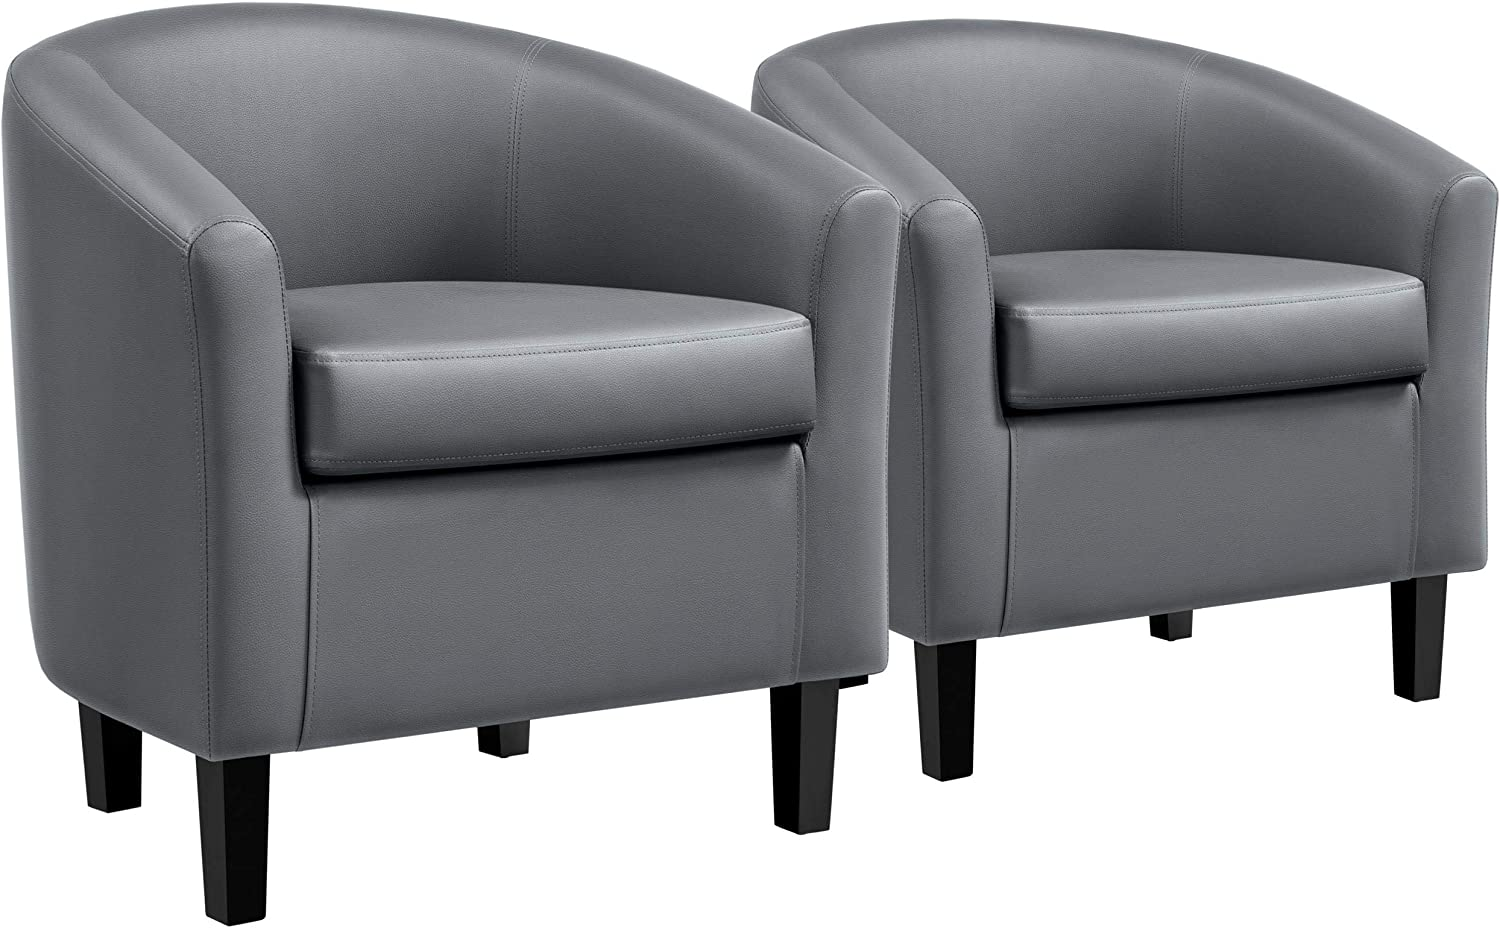 YAHEETECH Pack of 2 Barrel Chair Faux Leather Club Chair Accent Armchair Modern Style Tub Chair for for Living Room Gray